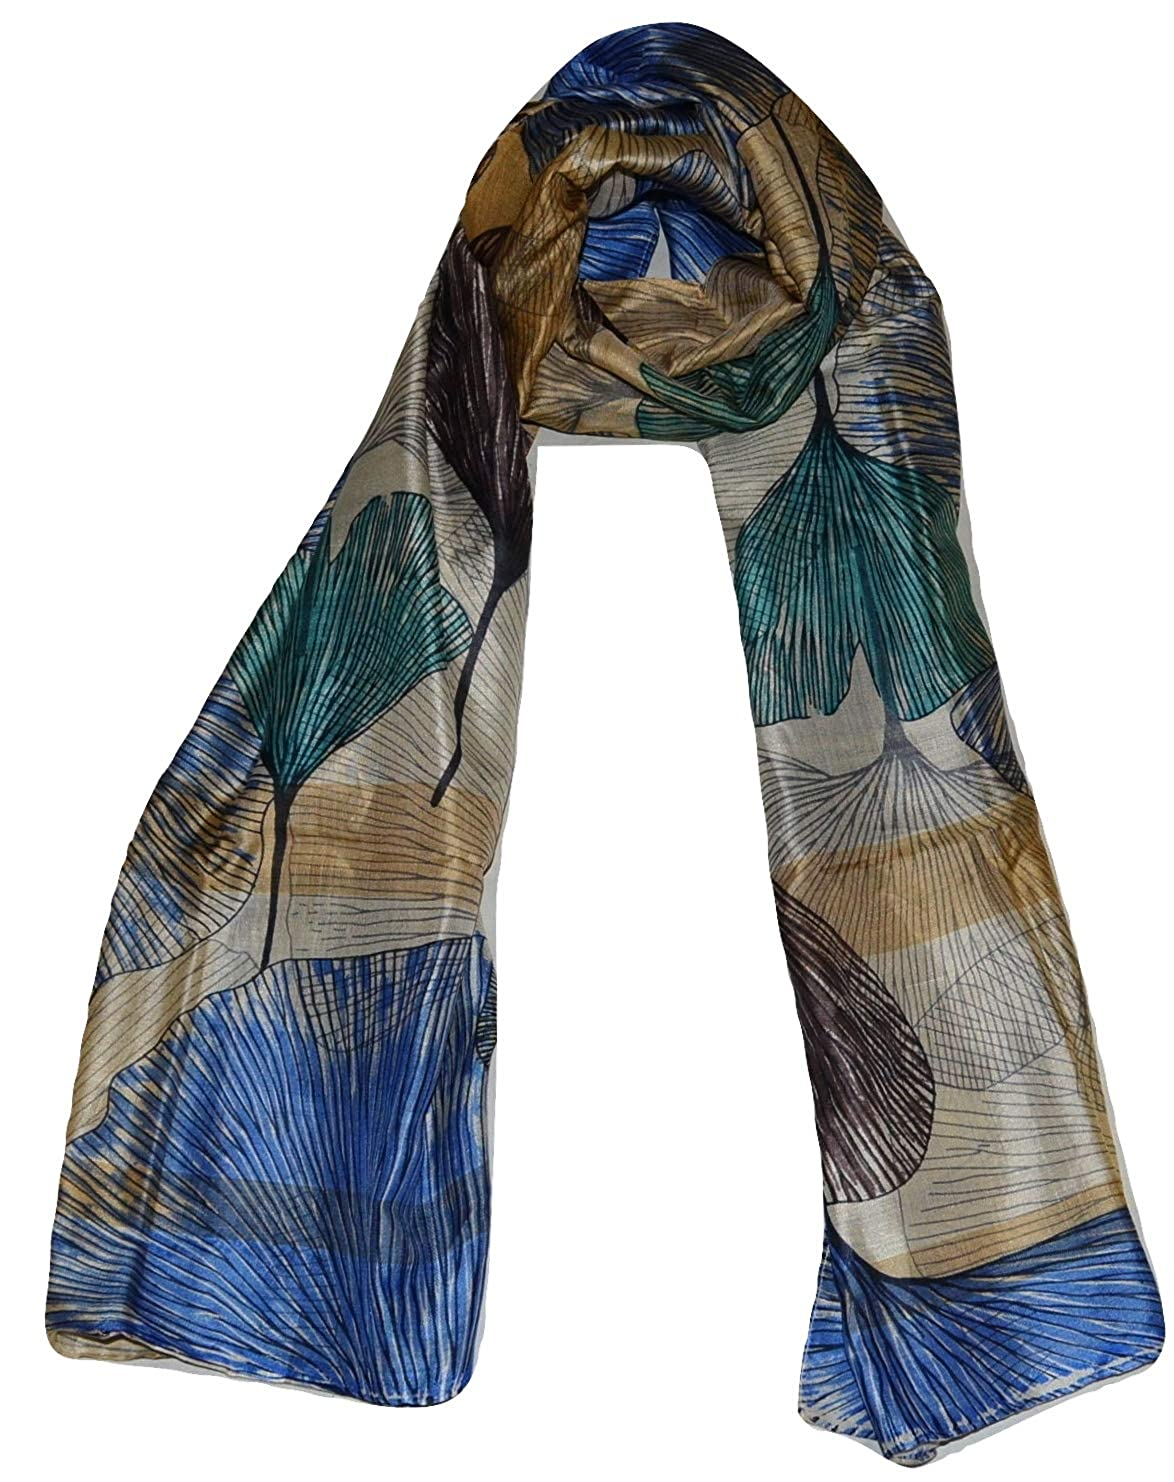 Multicolor 1 Handcrafted 100% Pure Mulberry Silk, Floral Print, Scarf Stole.